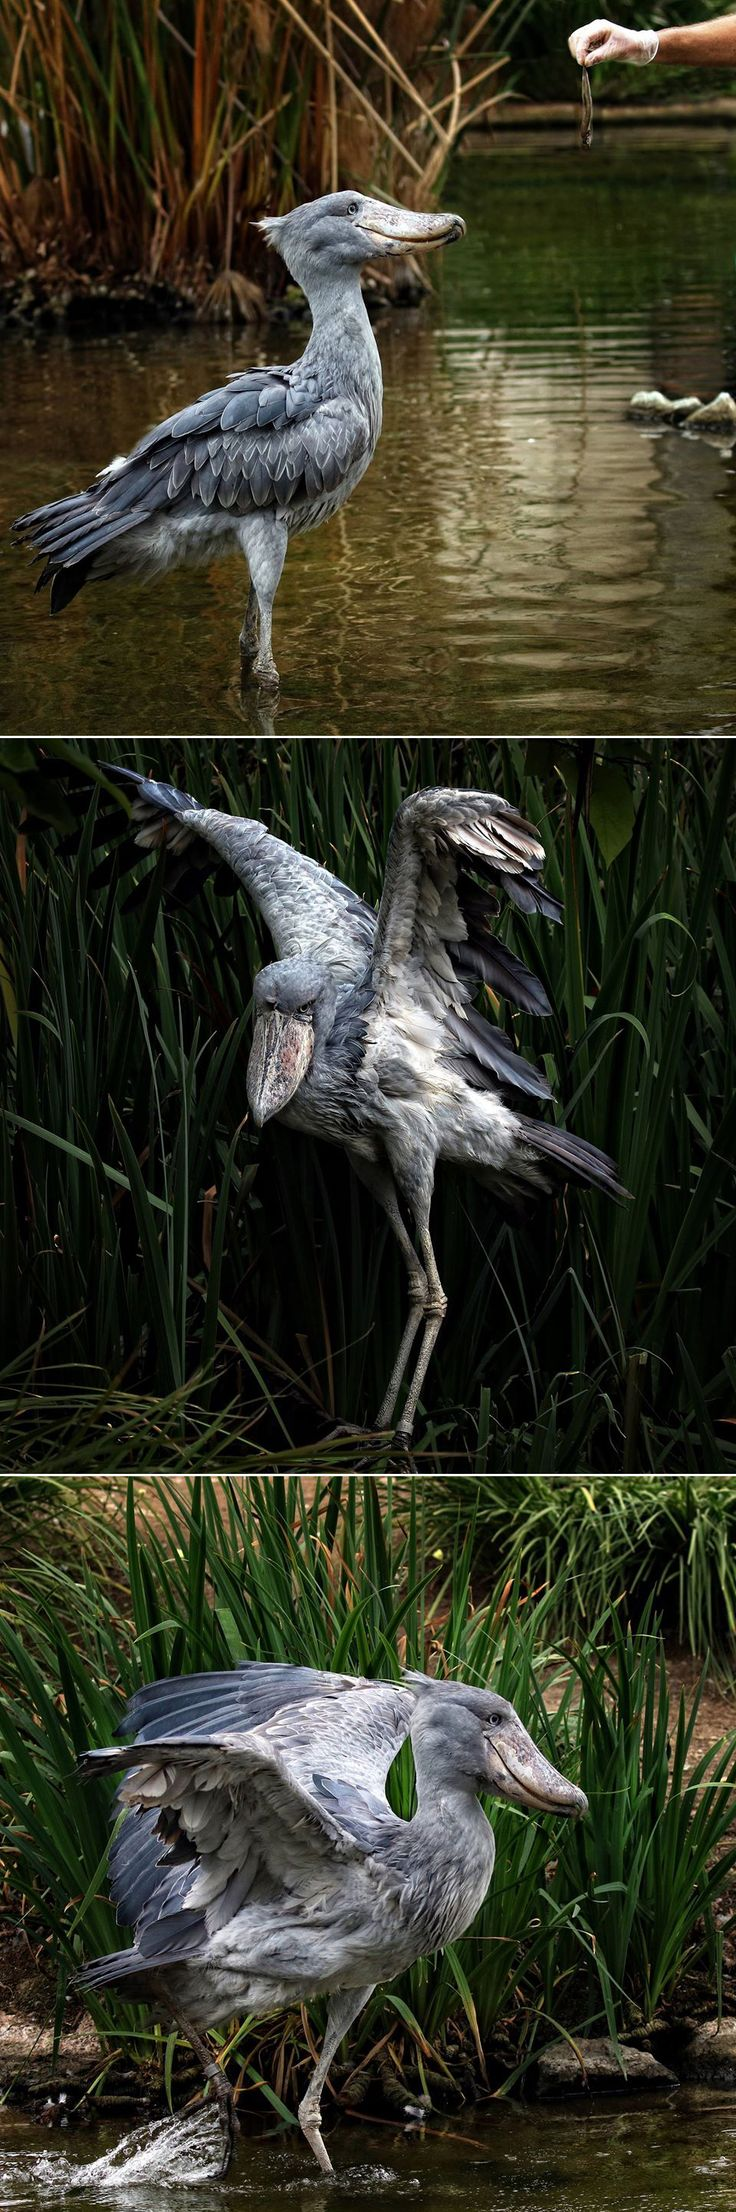 """The shoebill stork has an impressive bill that resembles a Dutch wooden shoe. Although related to storks, the shoebill's unusual bill and other characteristics place it in a family all its own. It is often compared to a statue, as the bird stands still for long periods of time in marshes, waiting for a fishy meal to surface. This """"freeze-and-seize strategy ensures that the stork lands its prey. (photos: Anita Ross)"""